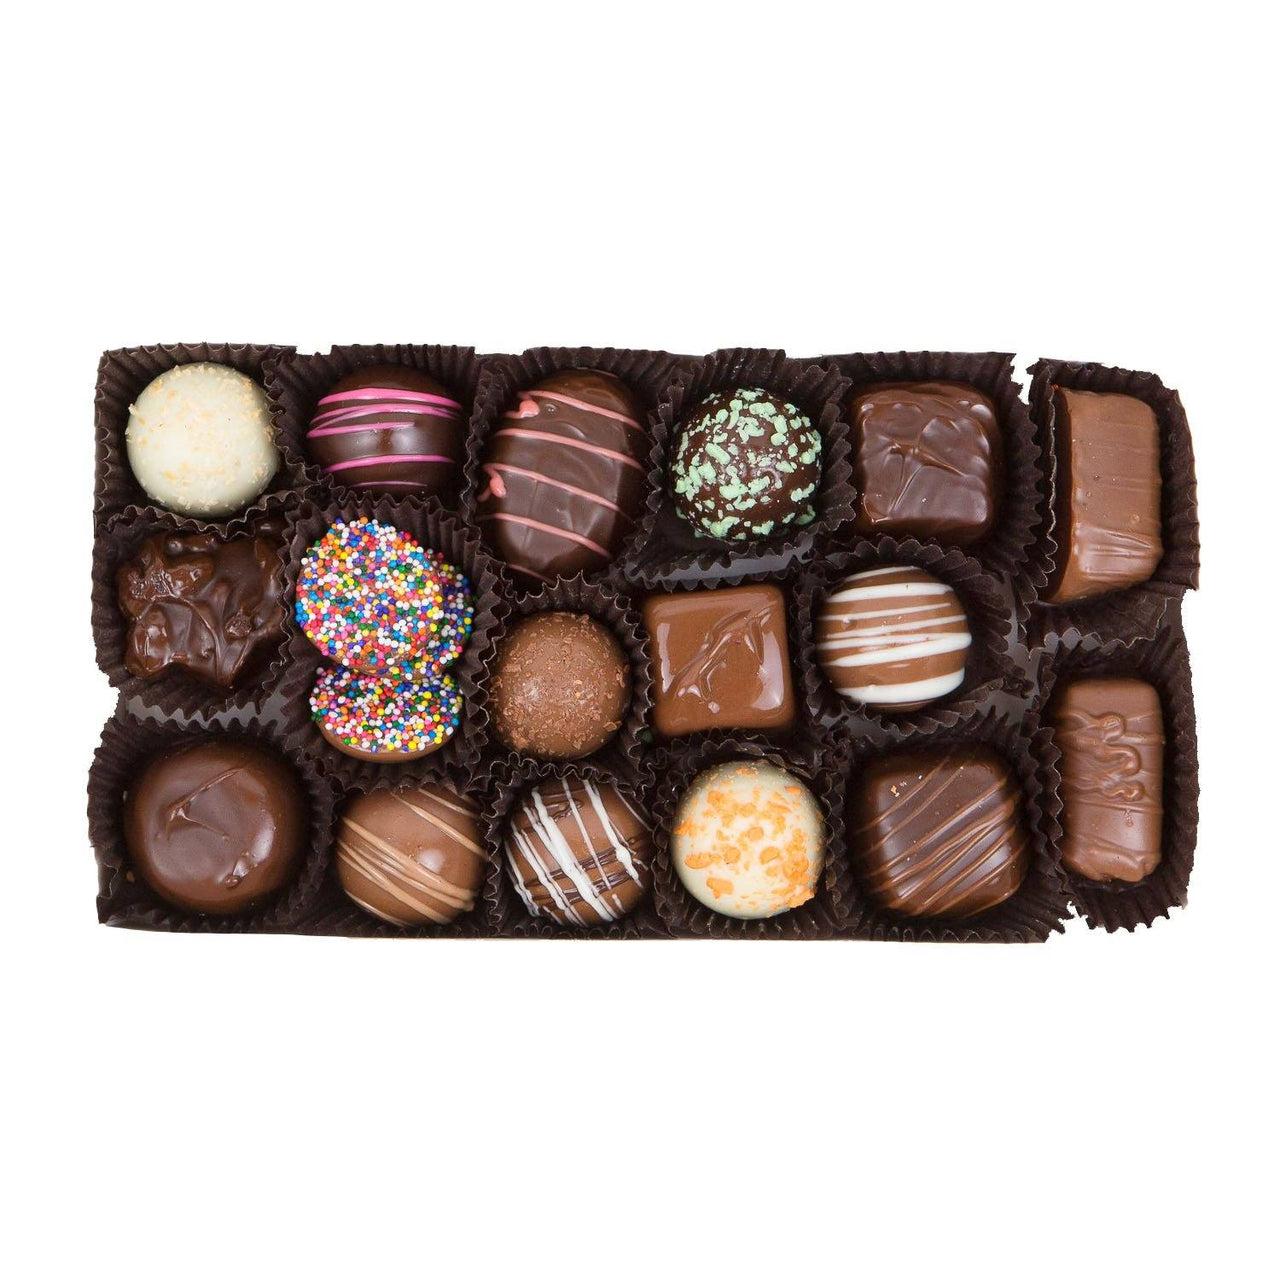 Gifts for Clients - Assorted Chocolate Gift Box - Jackie's Chocolate (1487146156067)